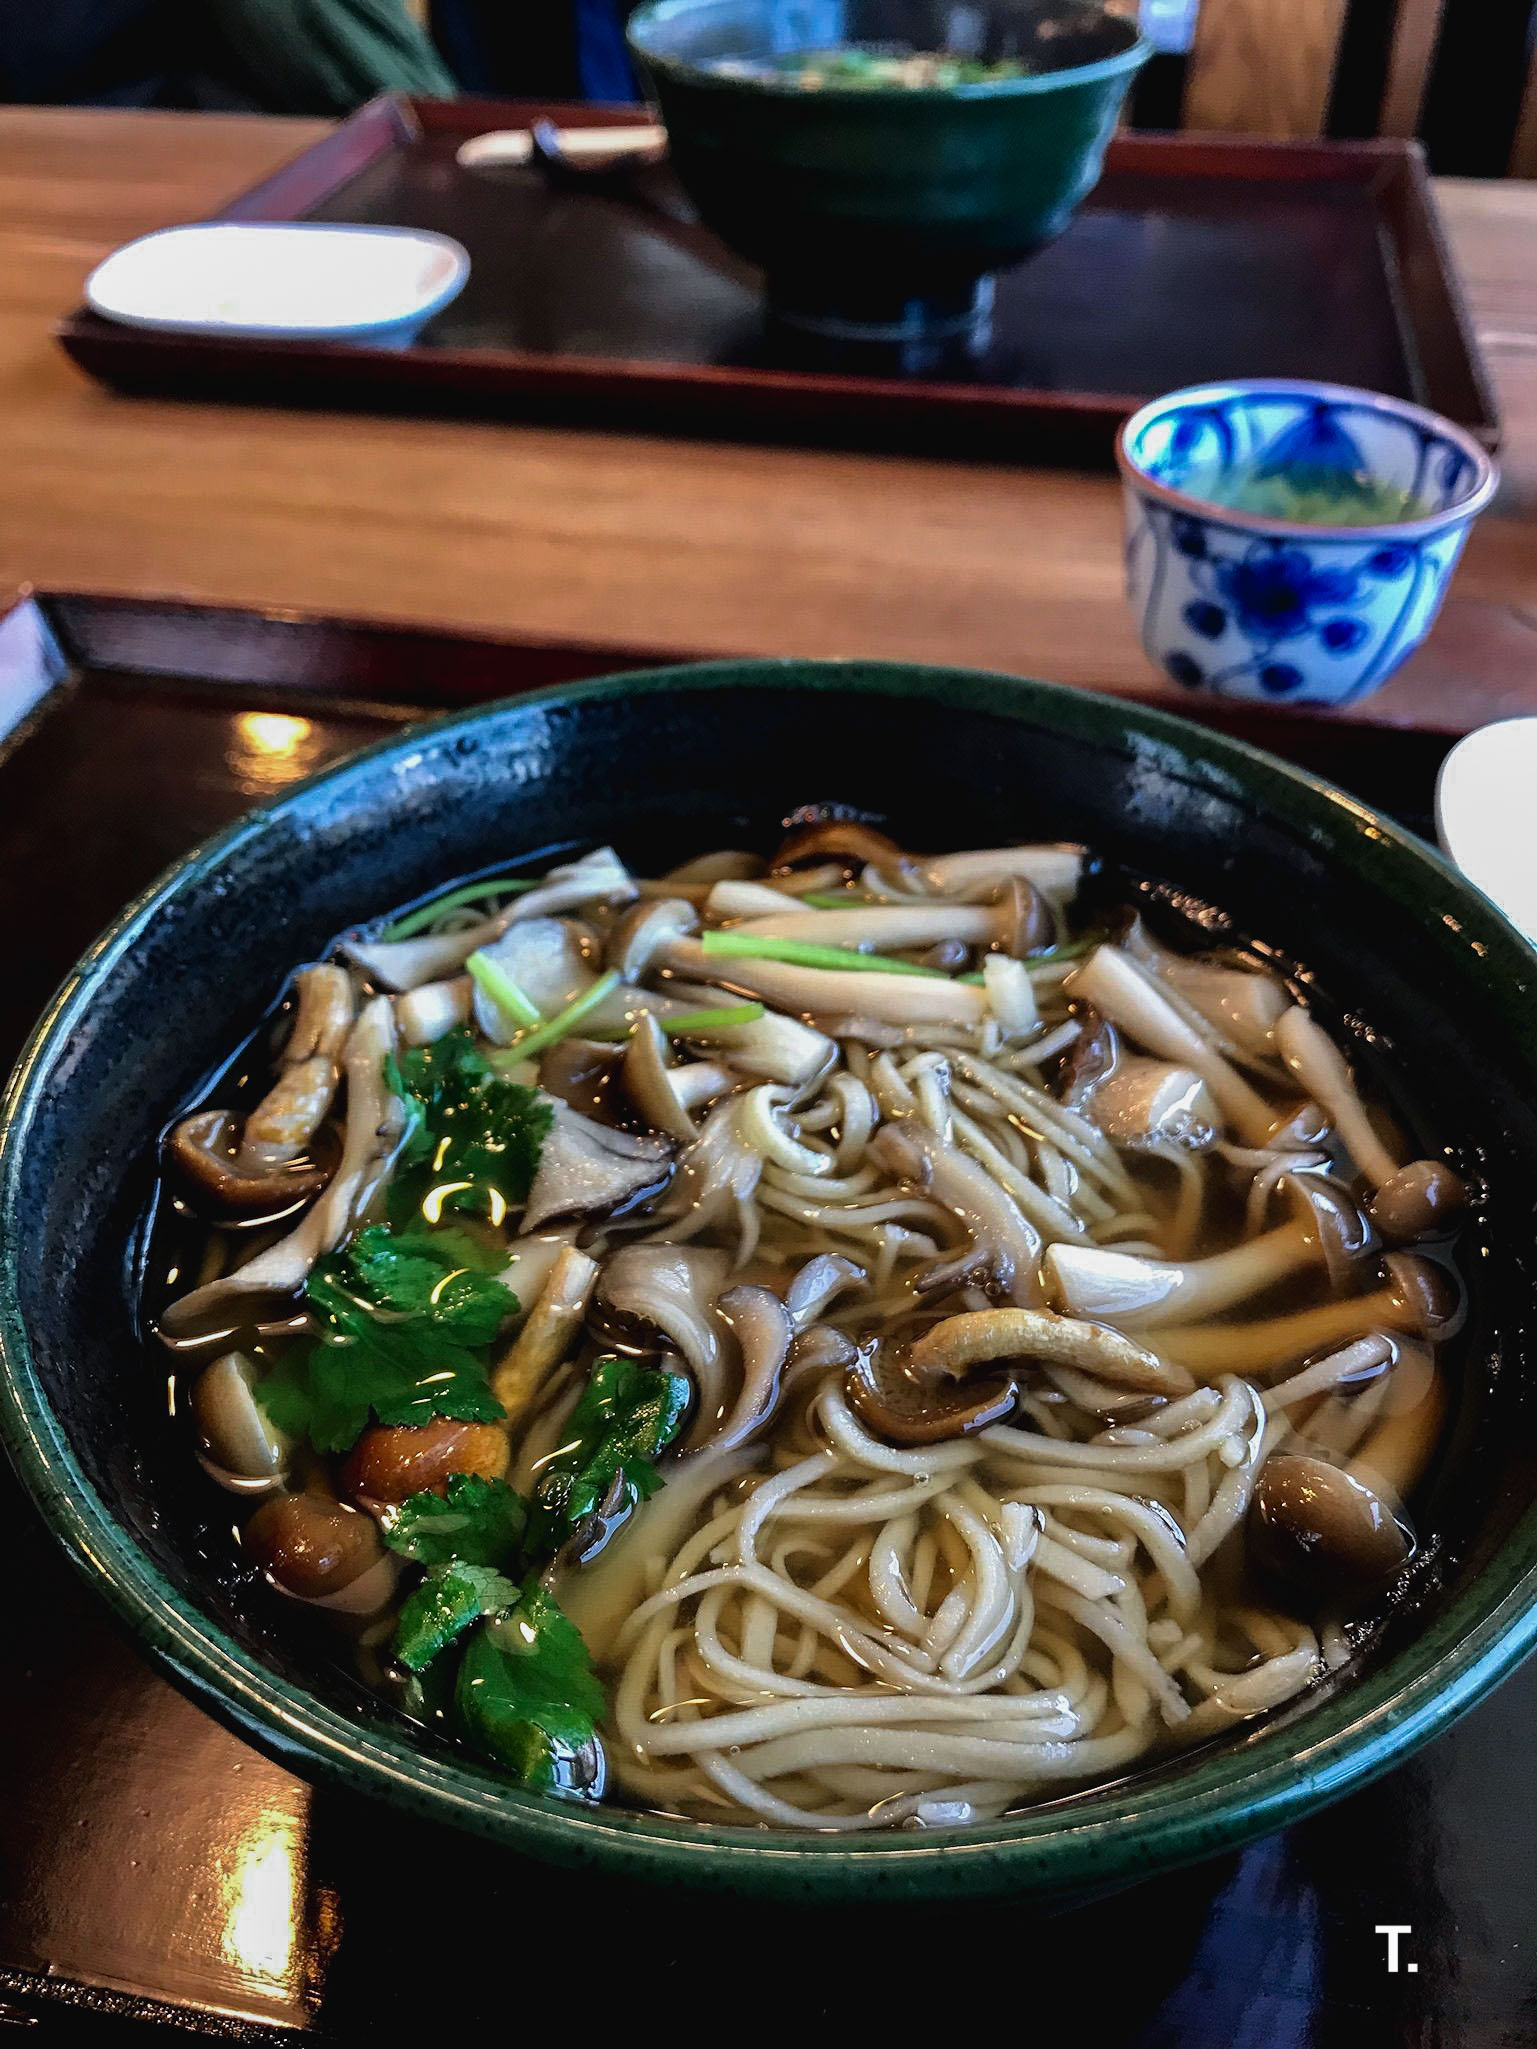 Matsumoto is known for its soba noodles so we stopped by a soba noodle house.